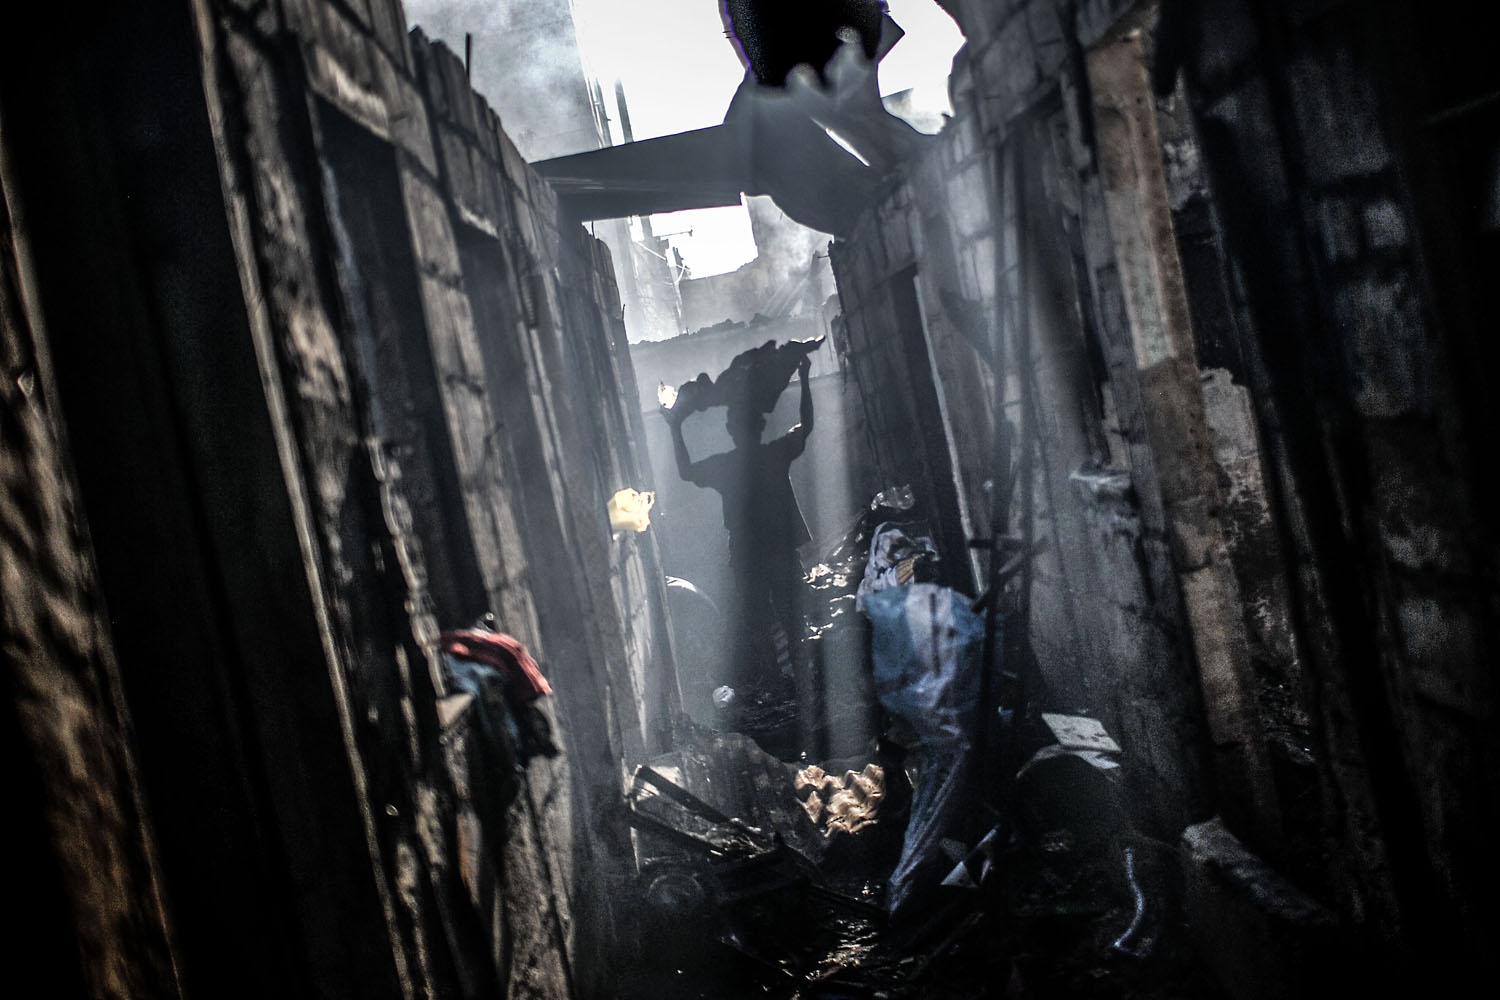 Mar. 23, 2014. A resident collects scrap metal from the rubble of burnt shanties after a fire gutted a residential area in Caloocan city, north of Manila, Philippines.